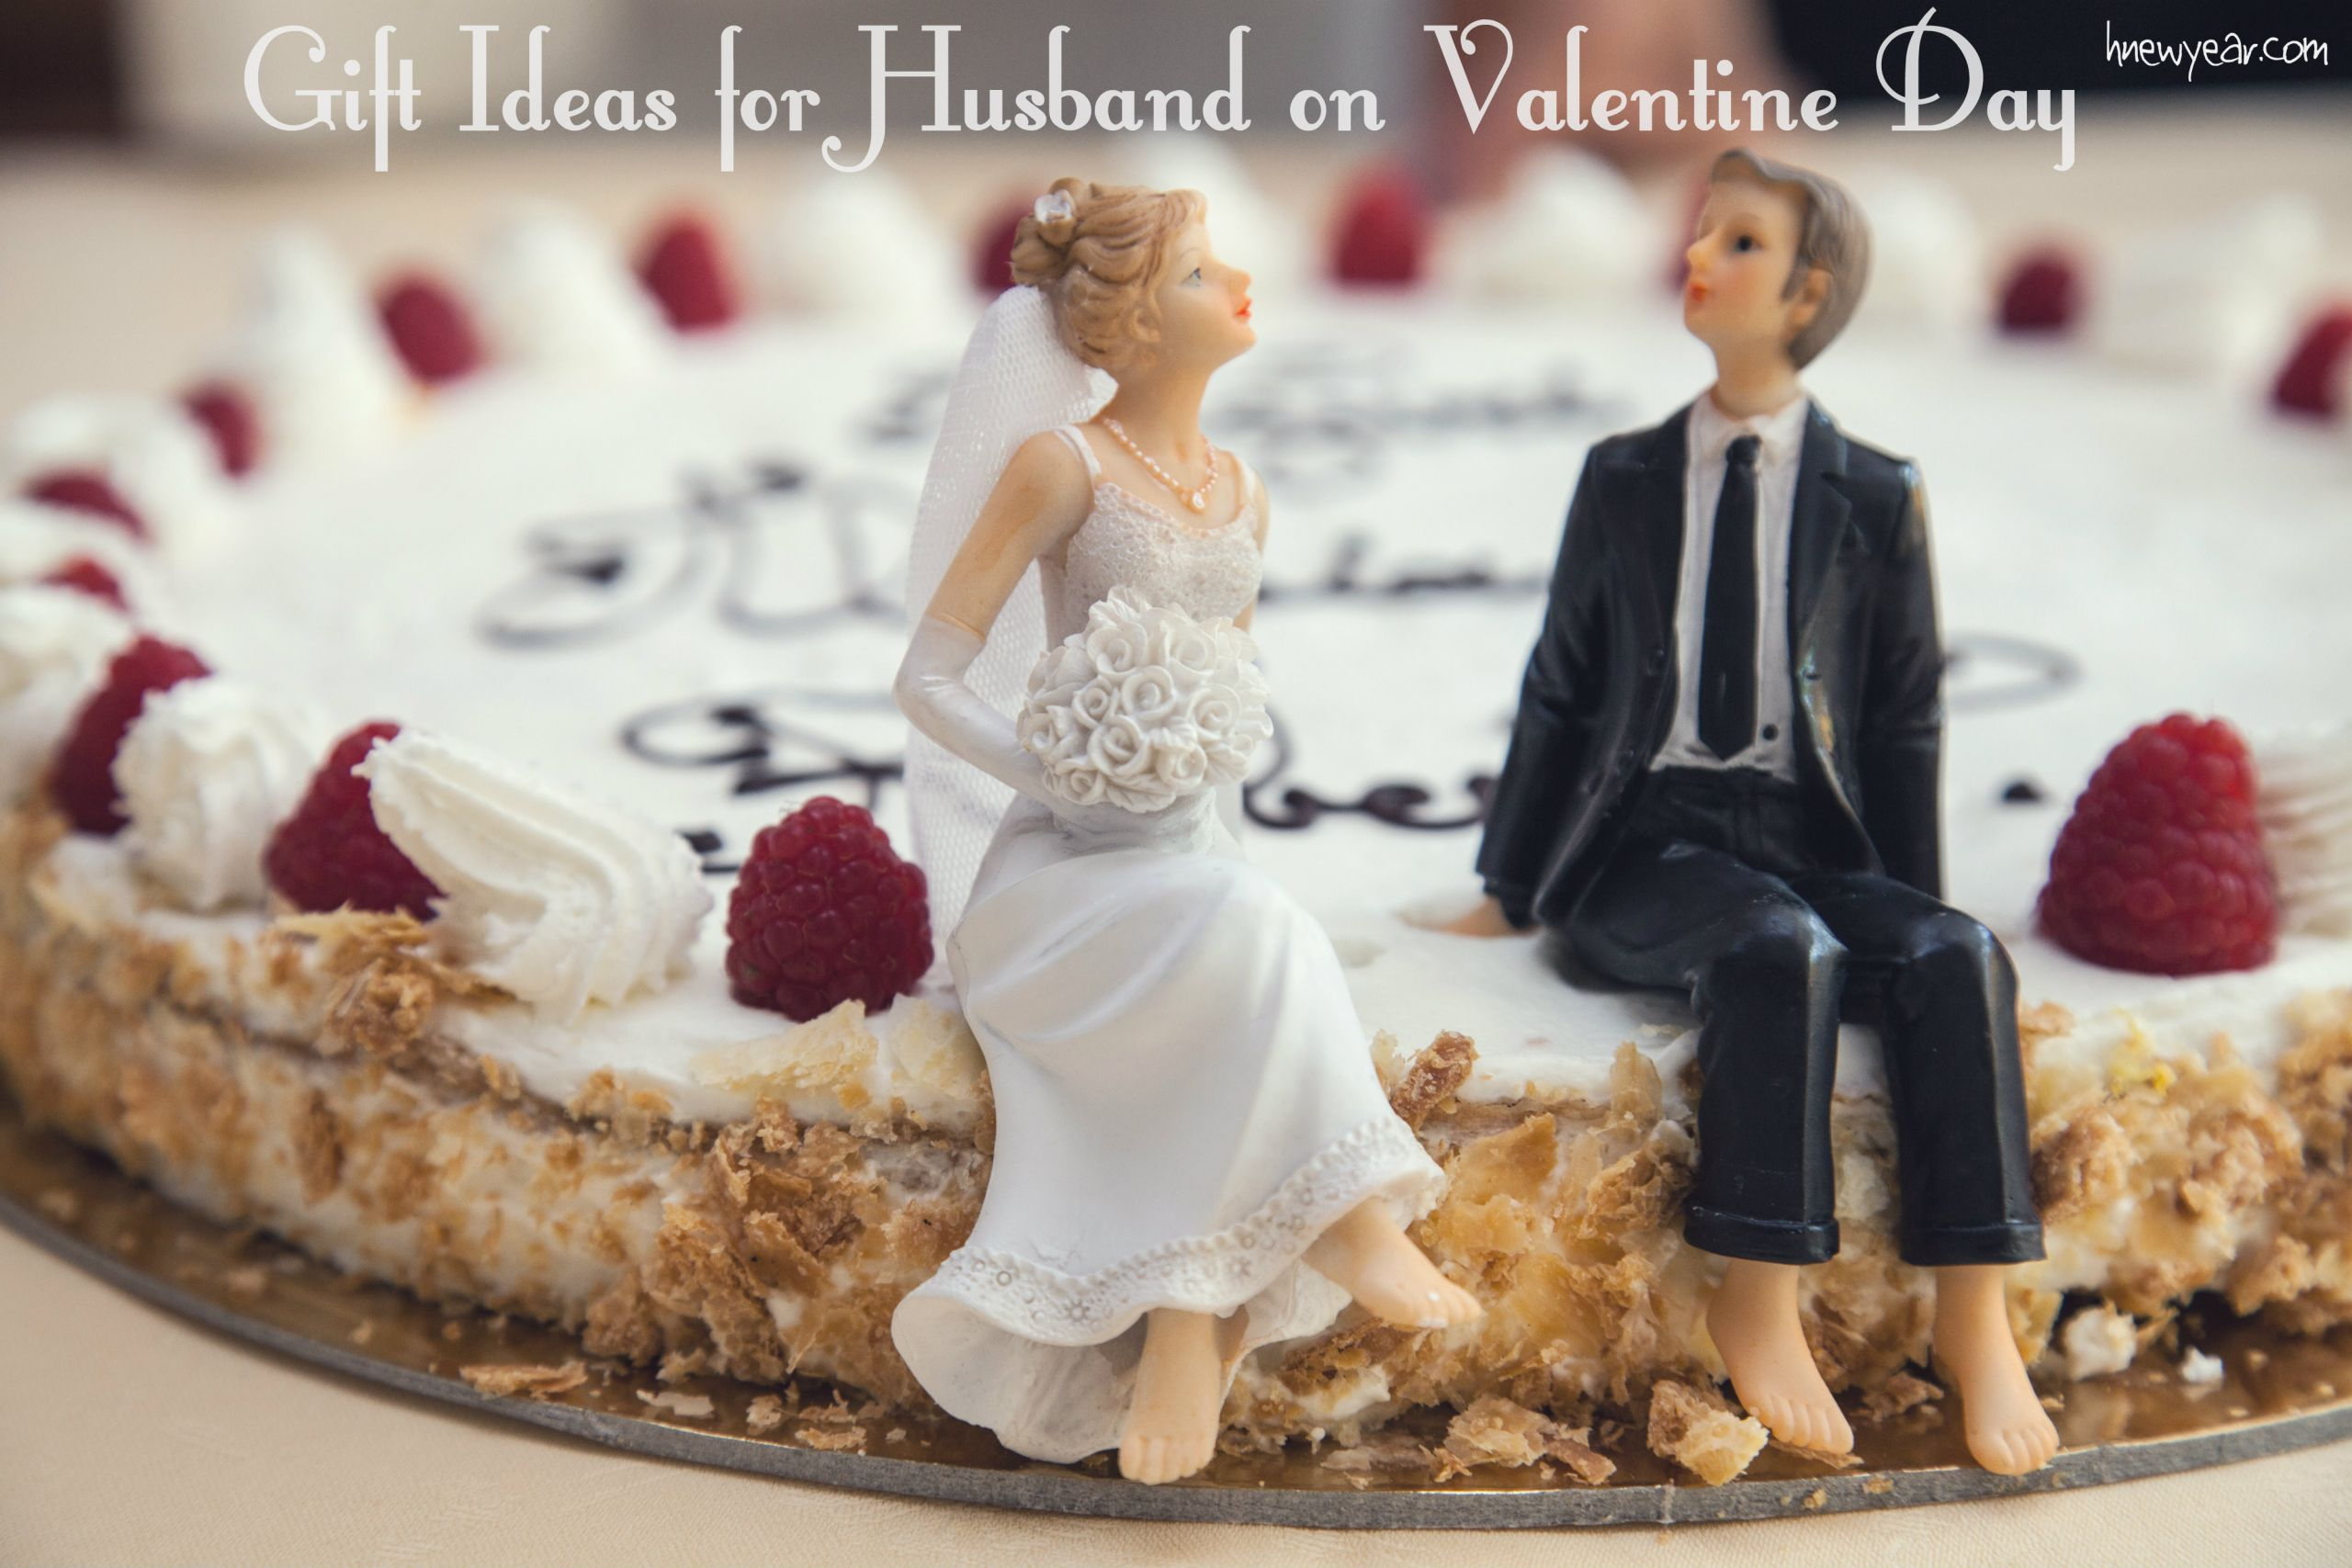 Valentines Day Gift Ideas For Husband  Ideal Valentine s Day Gift Ideas for Husband Hubby Present